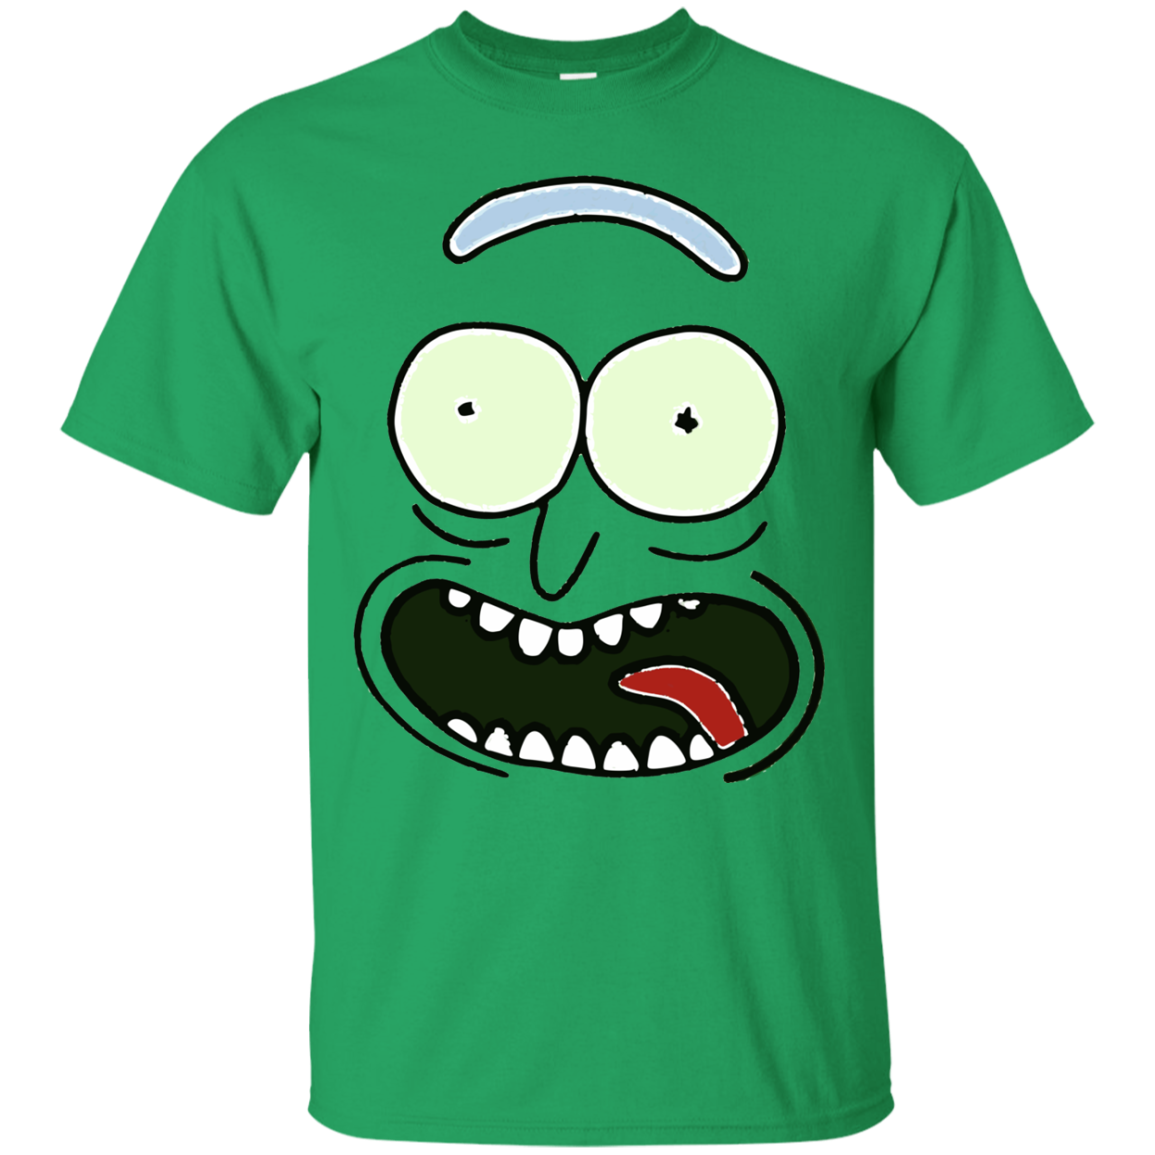 Pickle rick face png. Shirt and morty icestork